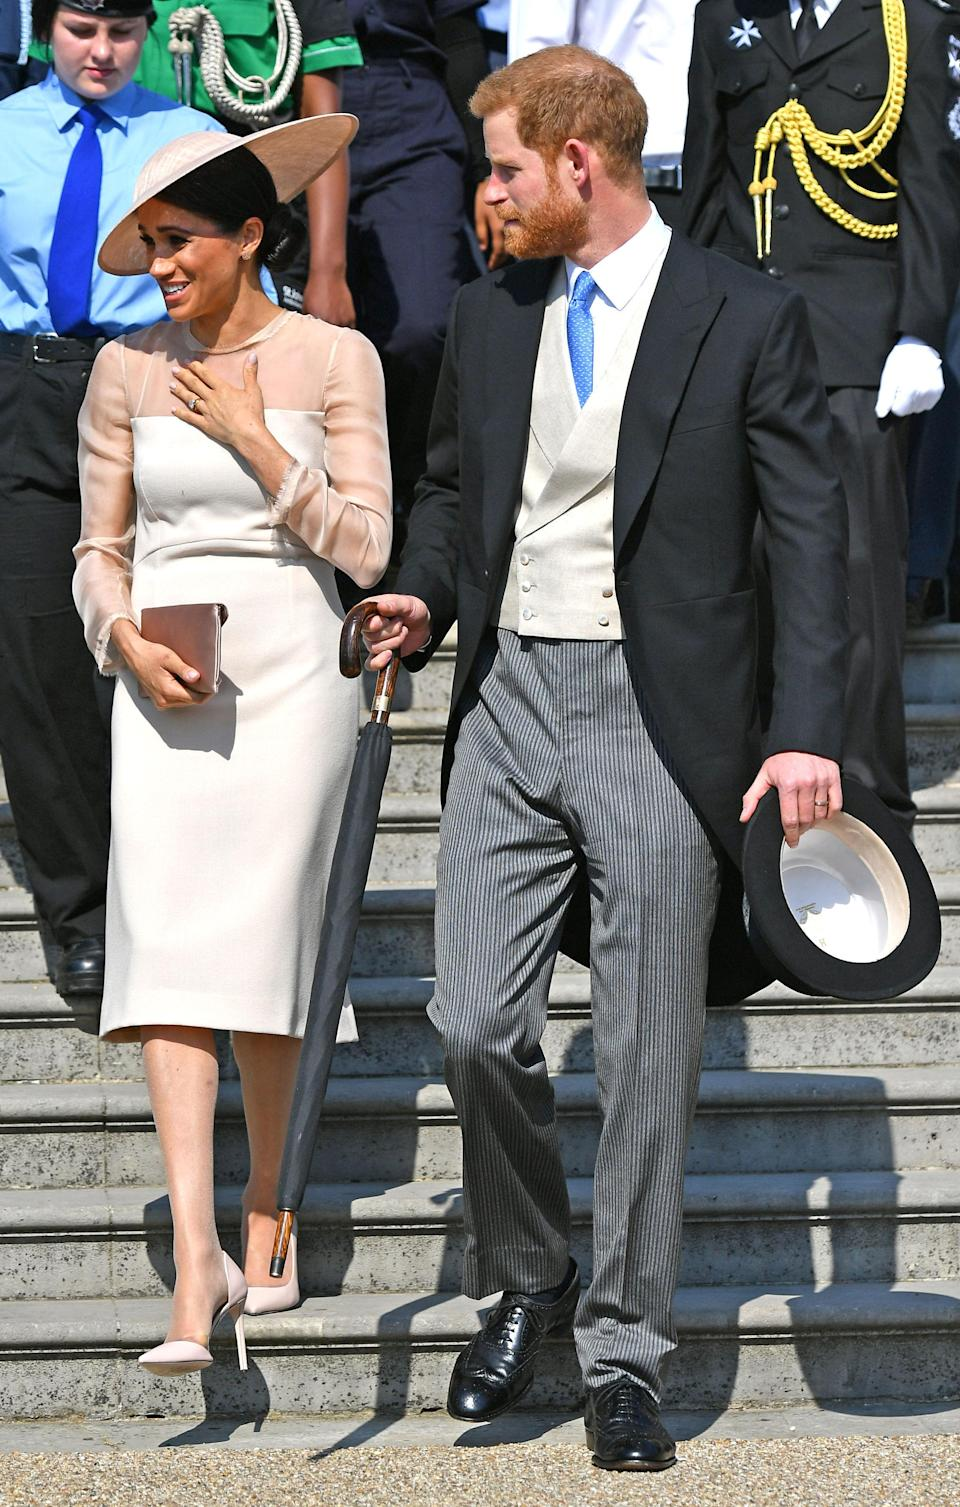 The newlyweds take on their first public outing as the Duke and Duchess of Sussex. [Photo: Getty]